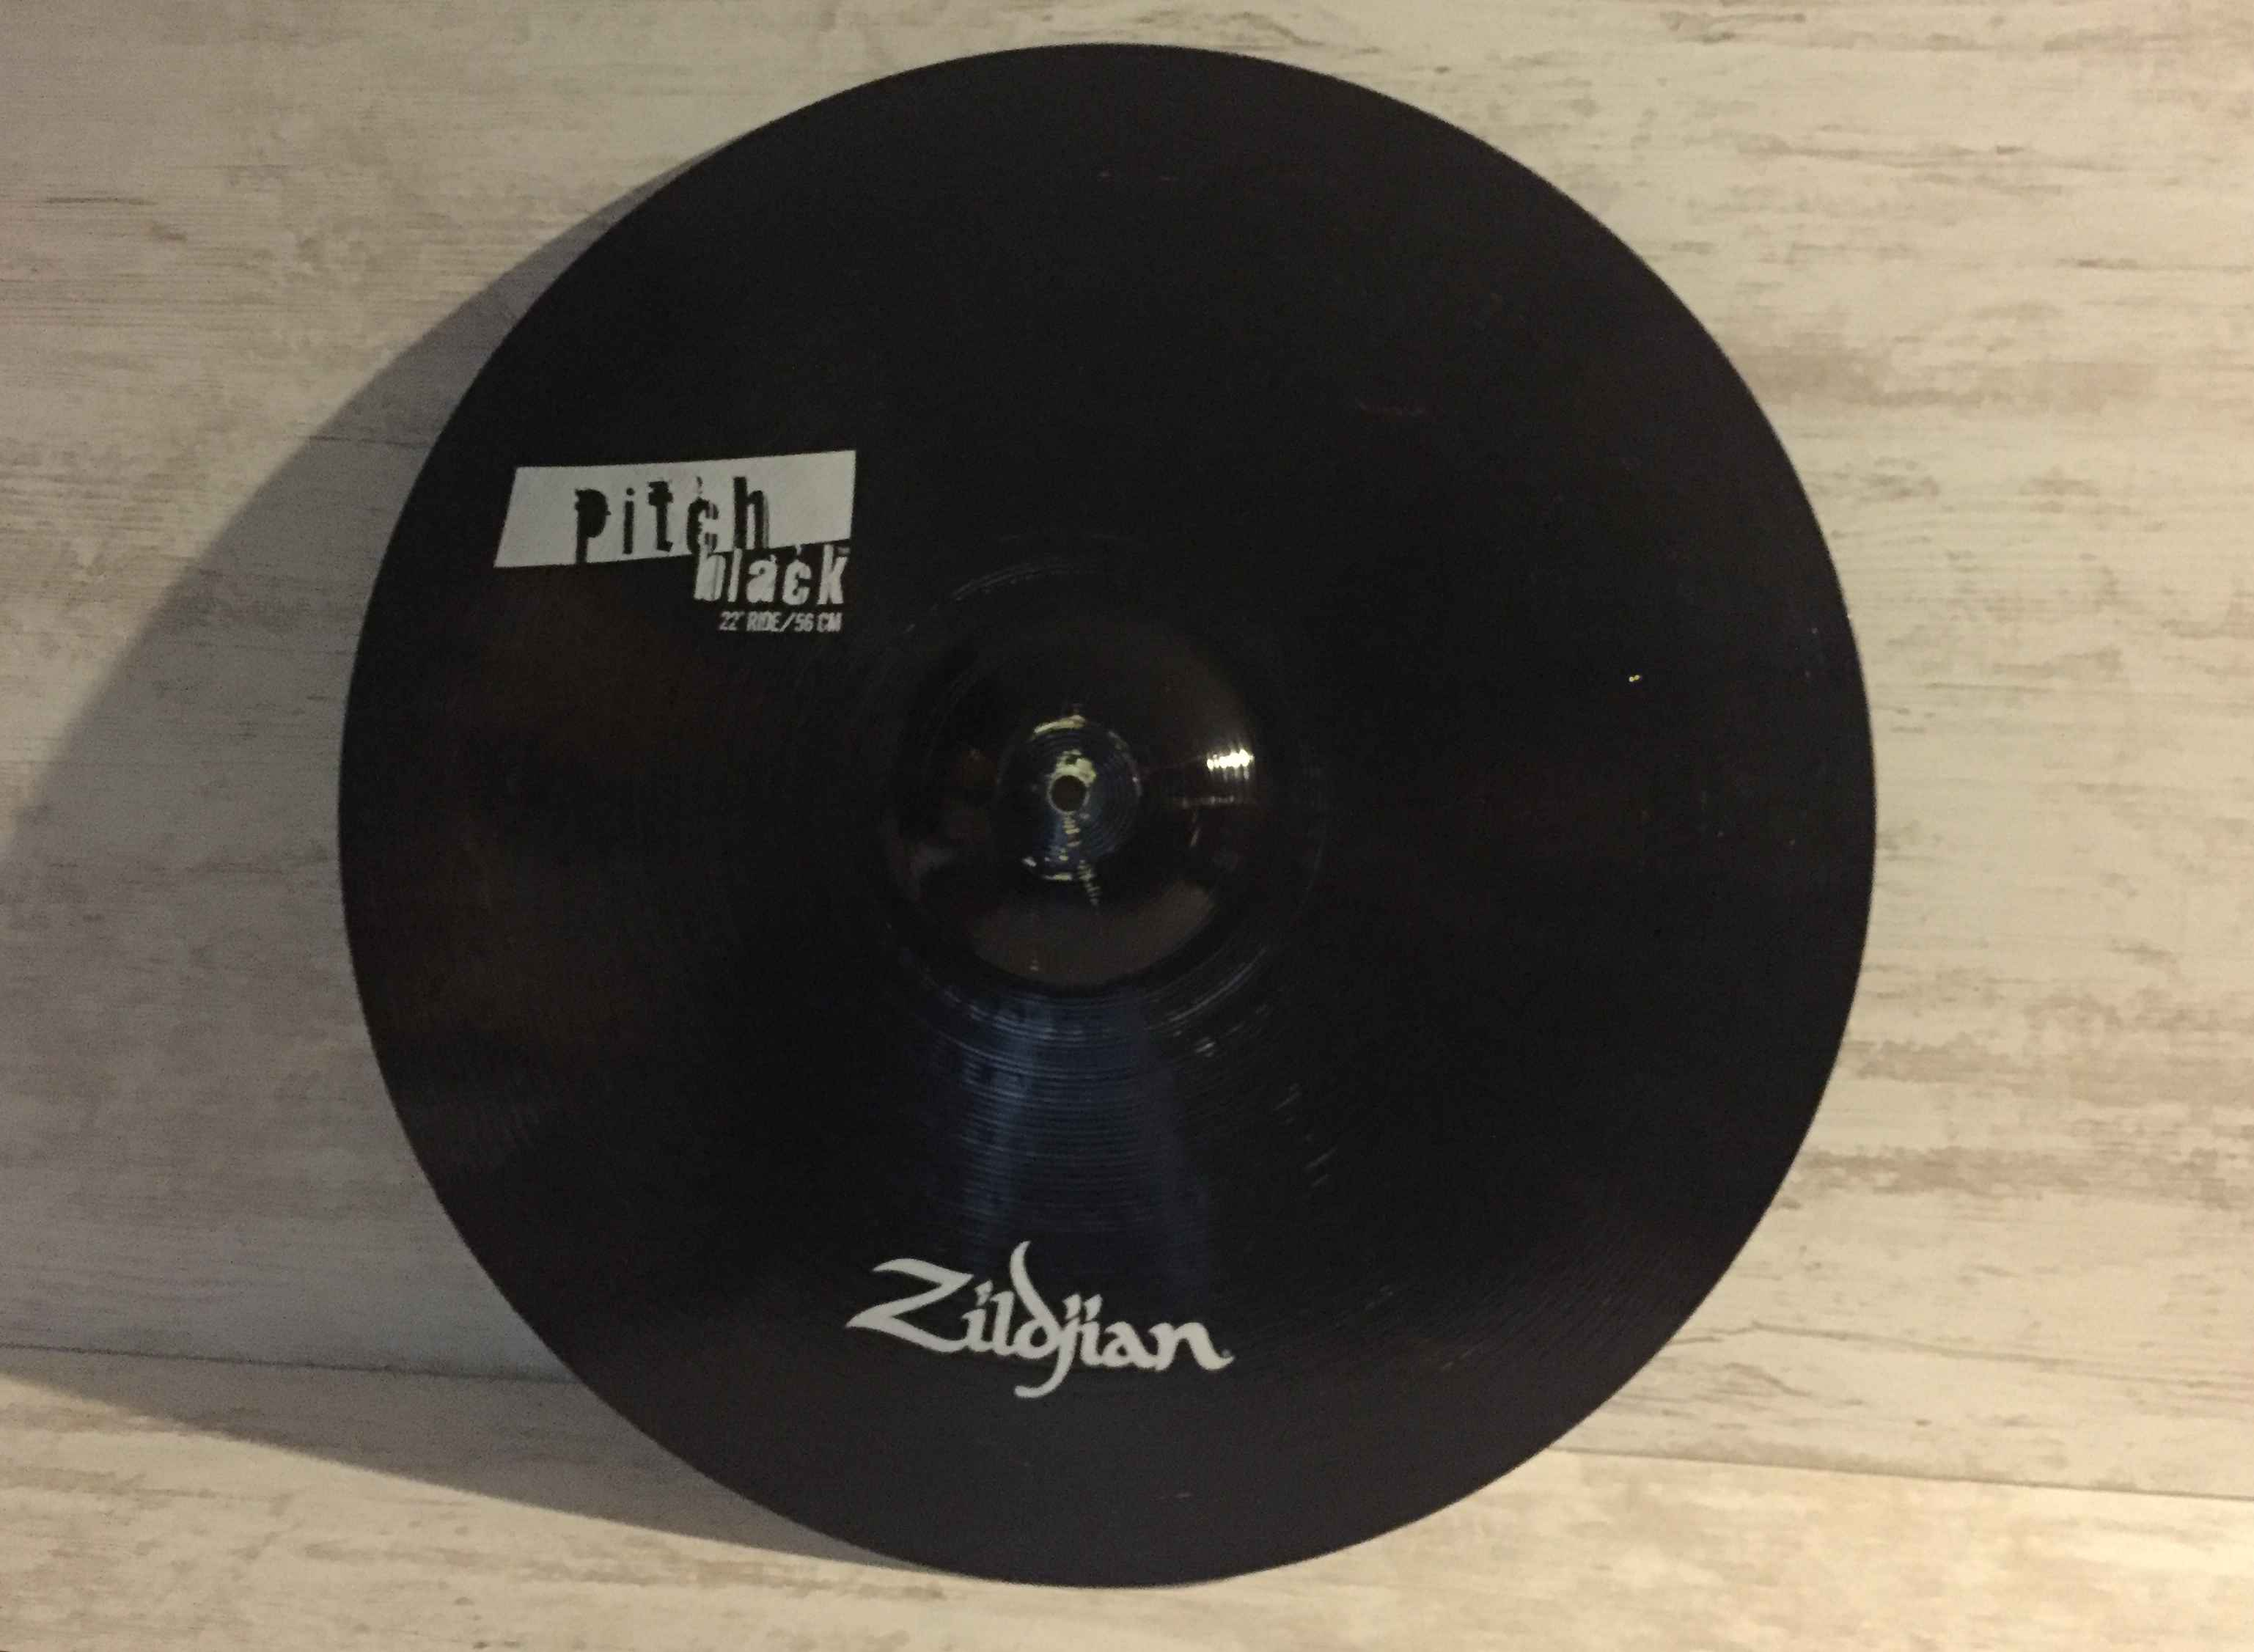 "ZILDJIAN Pitch Black 22"" Ride"